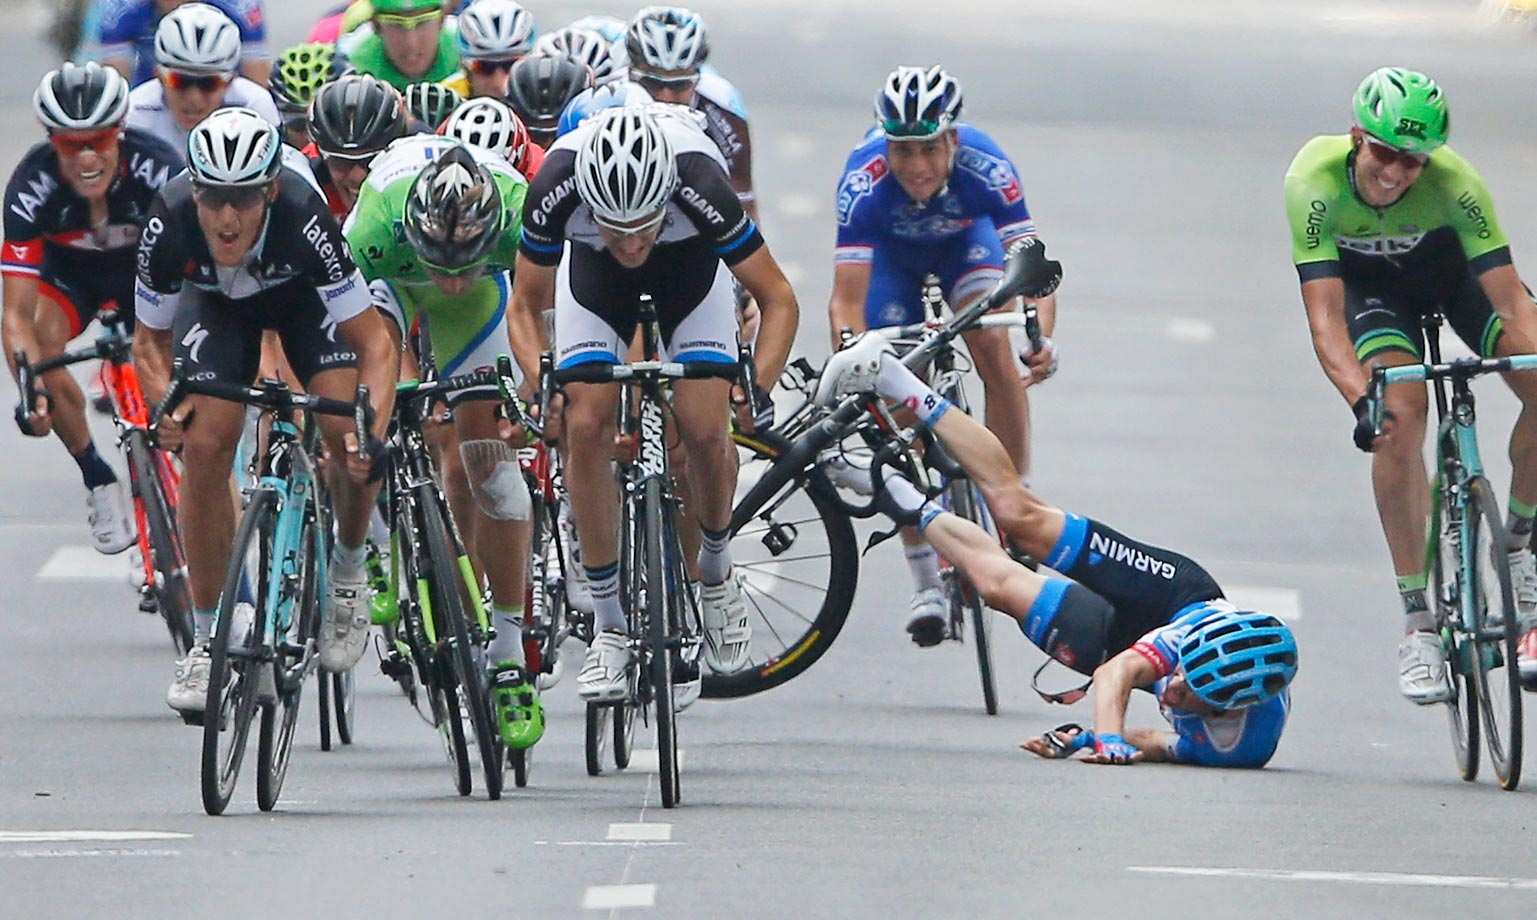 Andrew Talansky of the U.S. crashes alongside the pack as stage winner Italy's Matteo Trentin, foreground left, sprints towards the finish line during the seventh stage of the Tour de France.